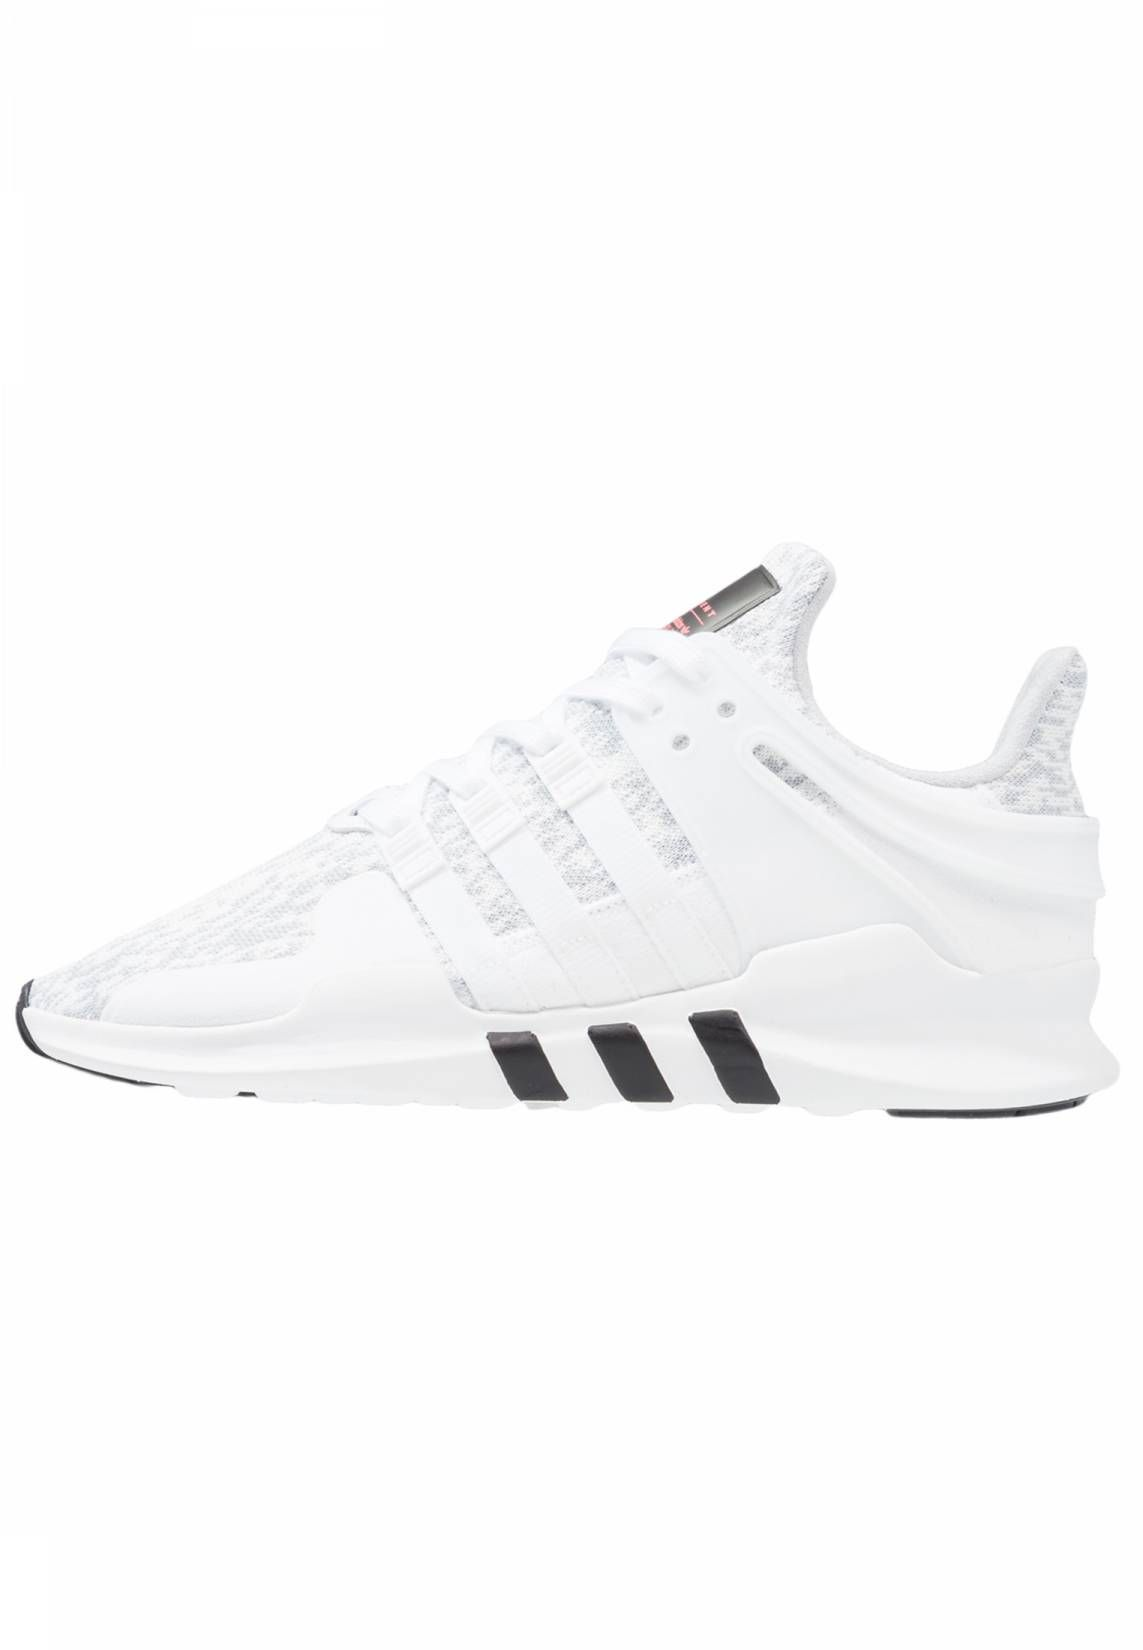 Imperio referir vapor  adidas Originals. EQT SUPPORT ADV - Trainers - clear onix/white/core black.  Pattern:marl. Sole:synthetics. Shoe t… | Adidas schuhe frauen, Adidas  originals, Sneaker